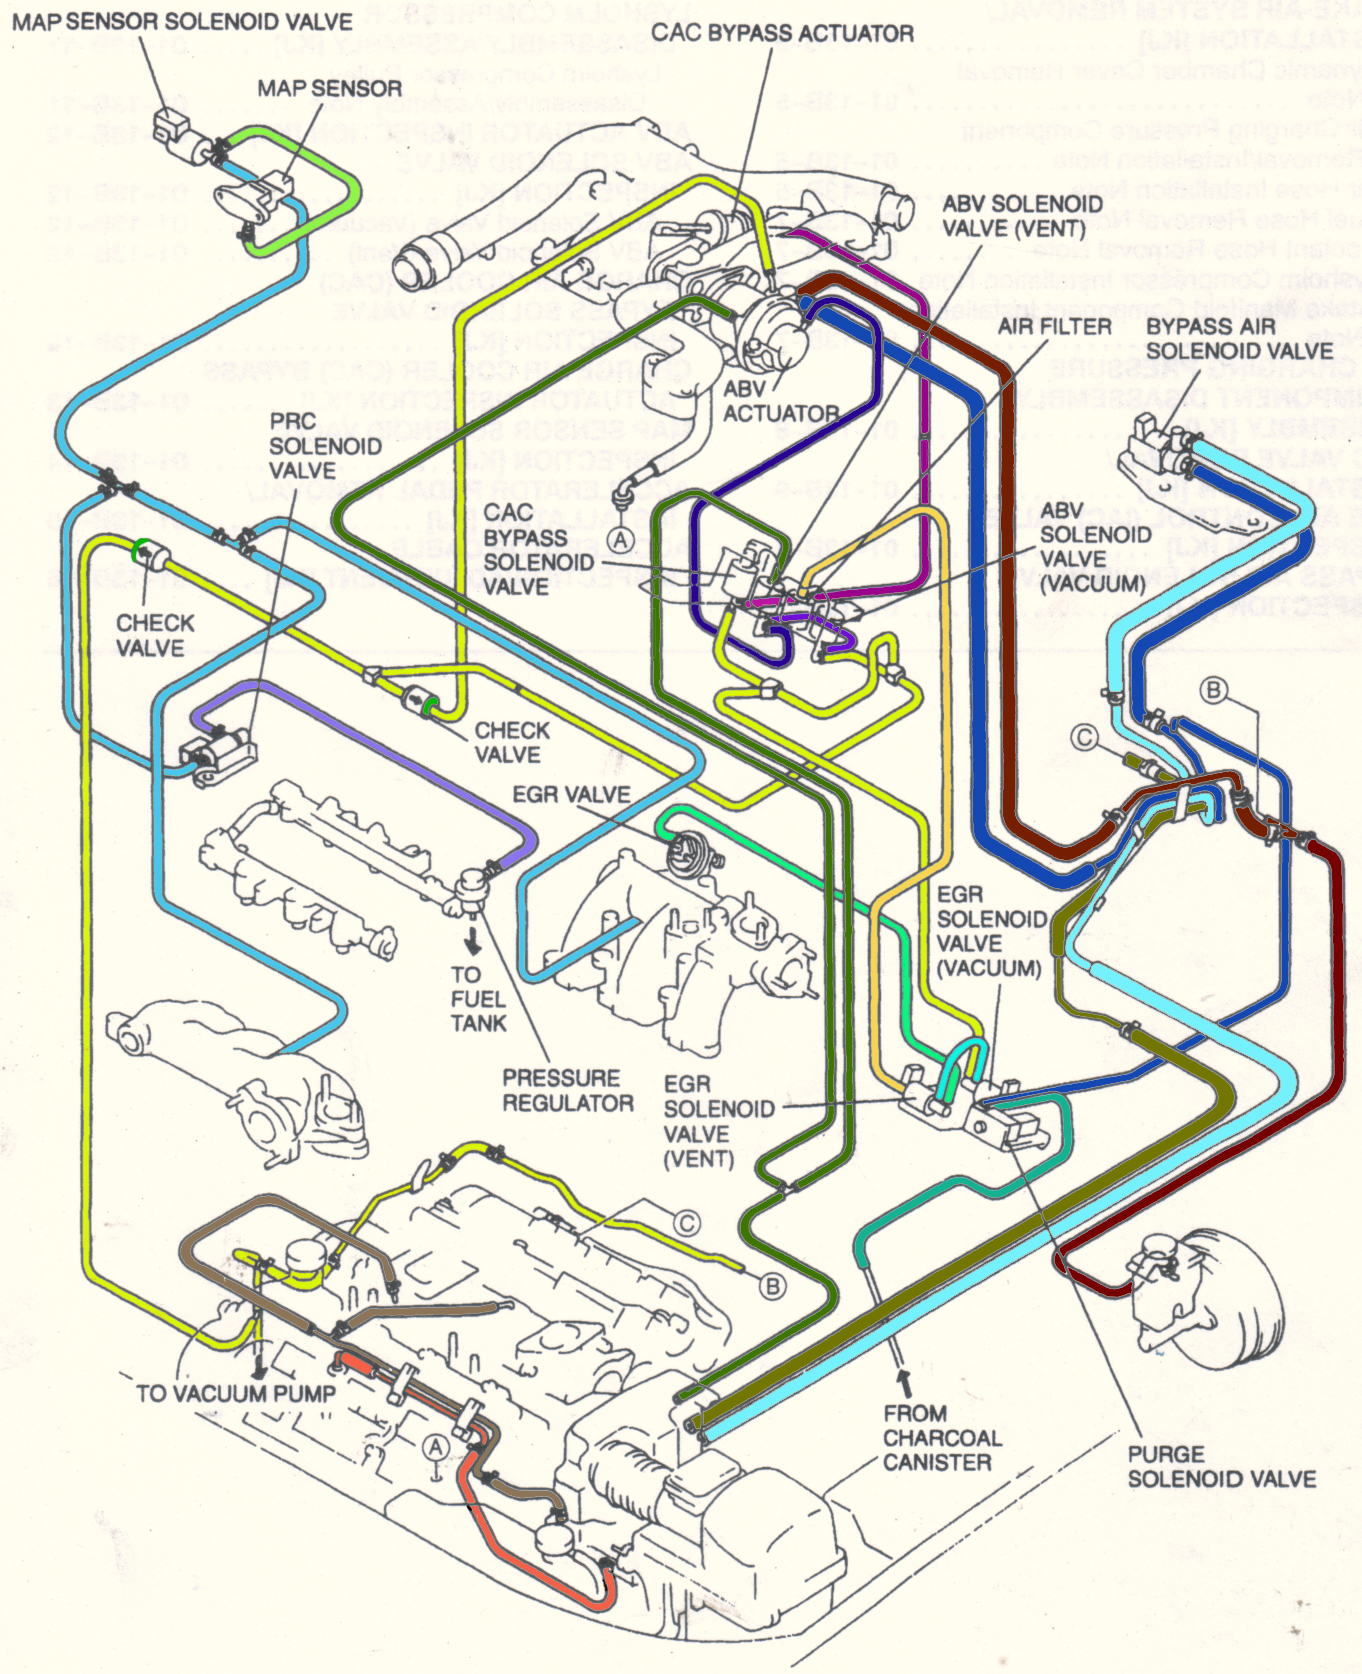 Mazda Millenia Miller Engine Diagram Great Installation Of Wiring B4000 Parts S Vacuum Forum Rh Forums Mazdaworld Org 2001 Mpv 2004 3